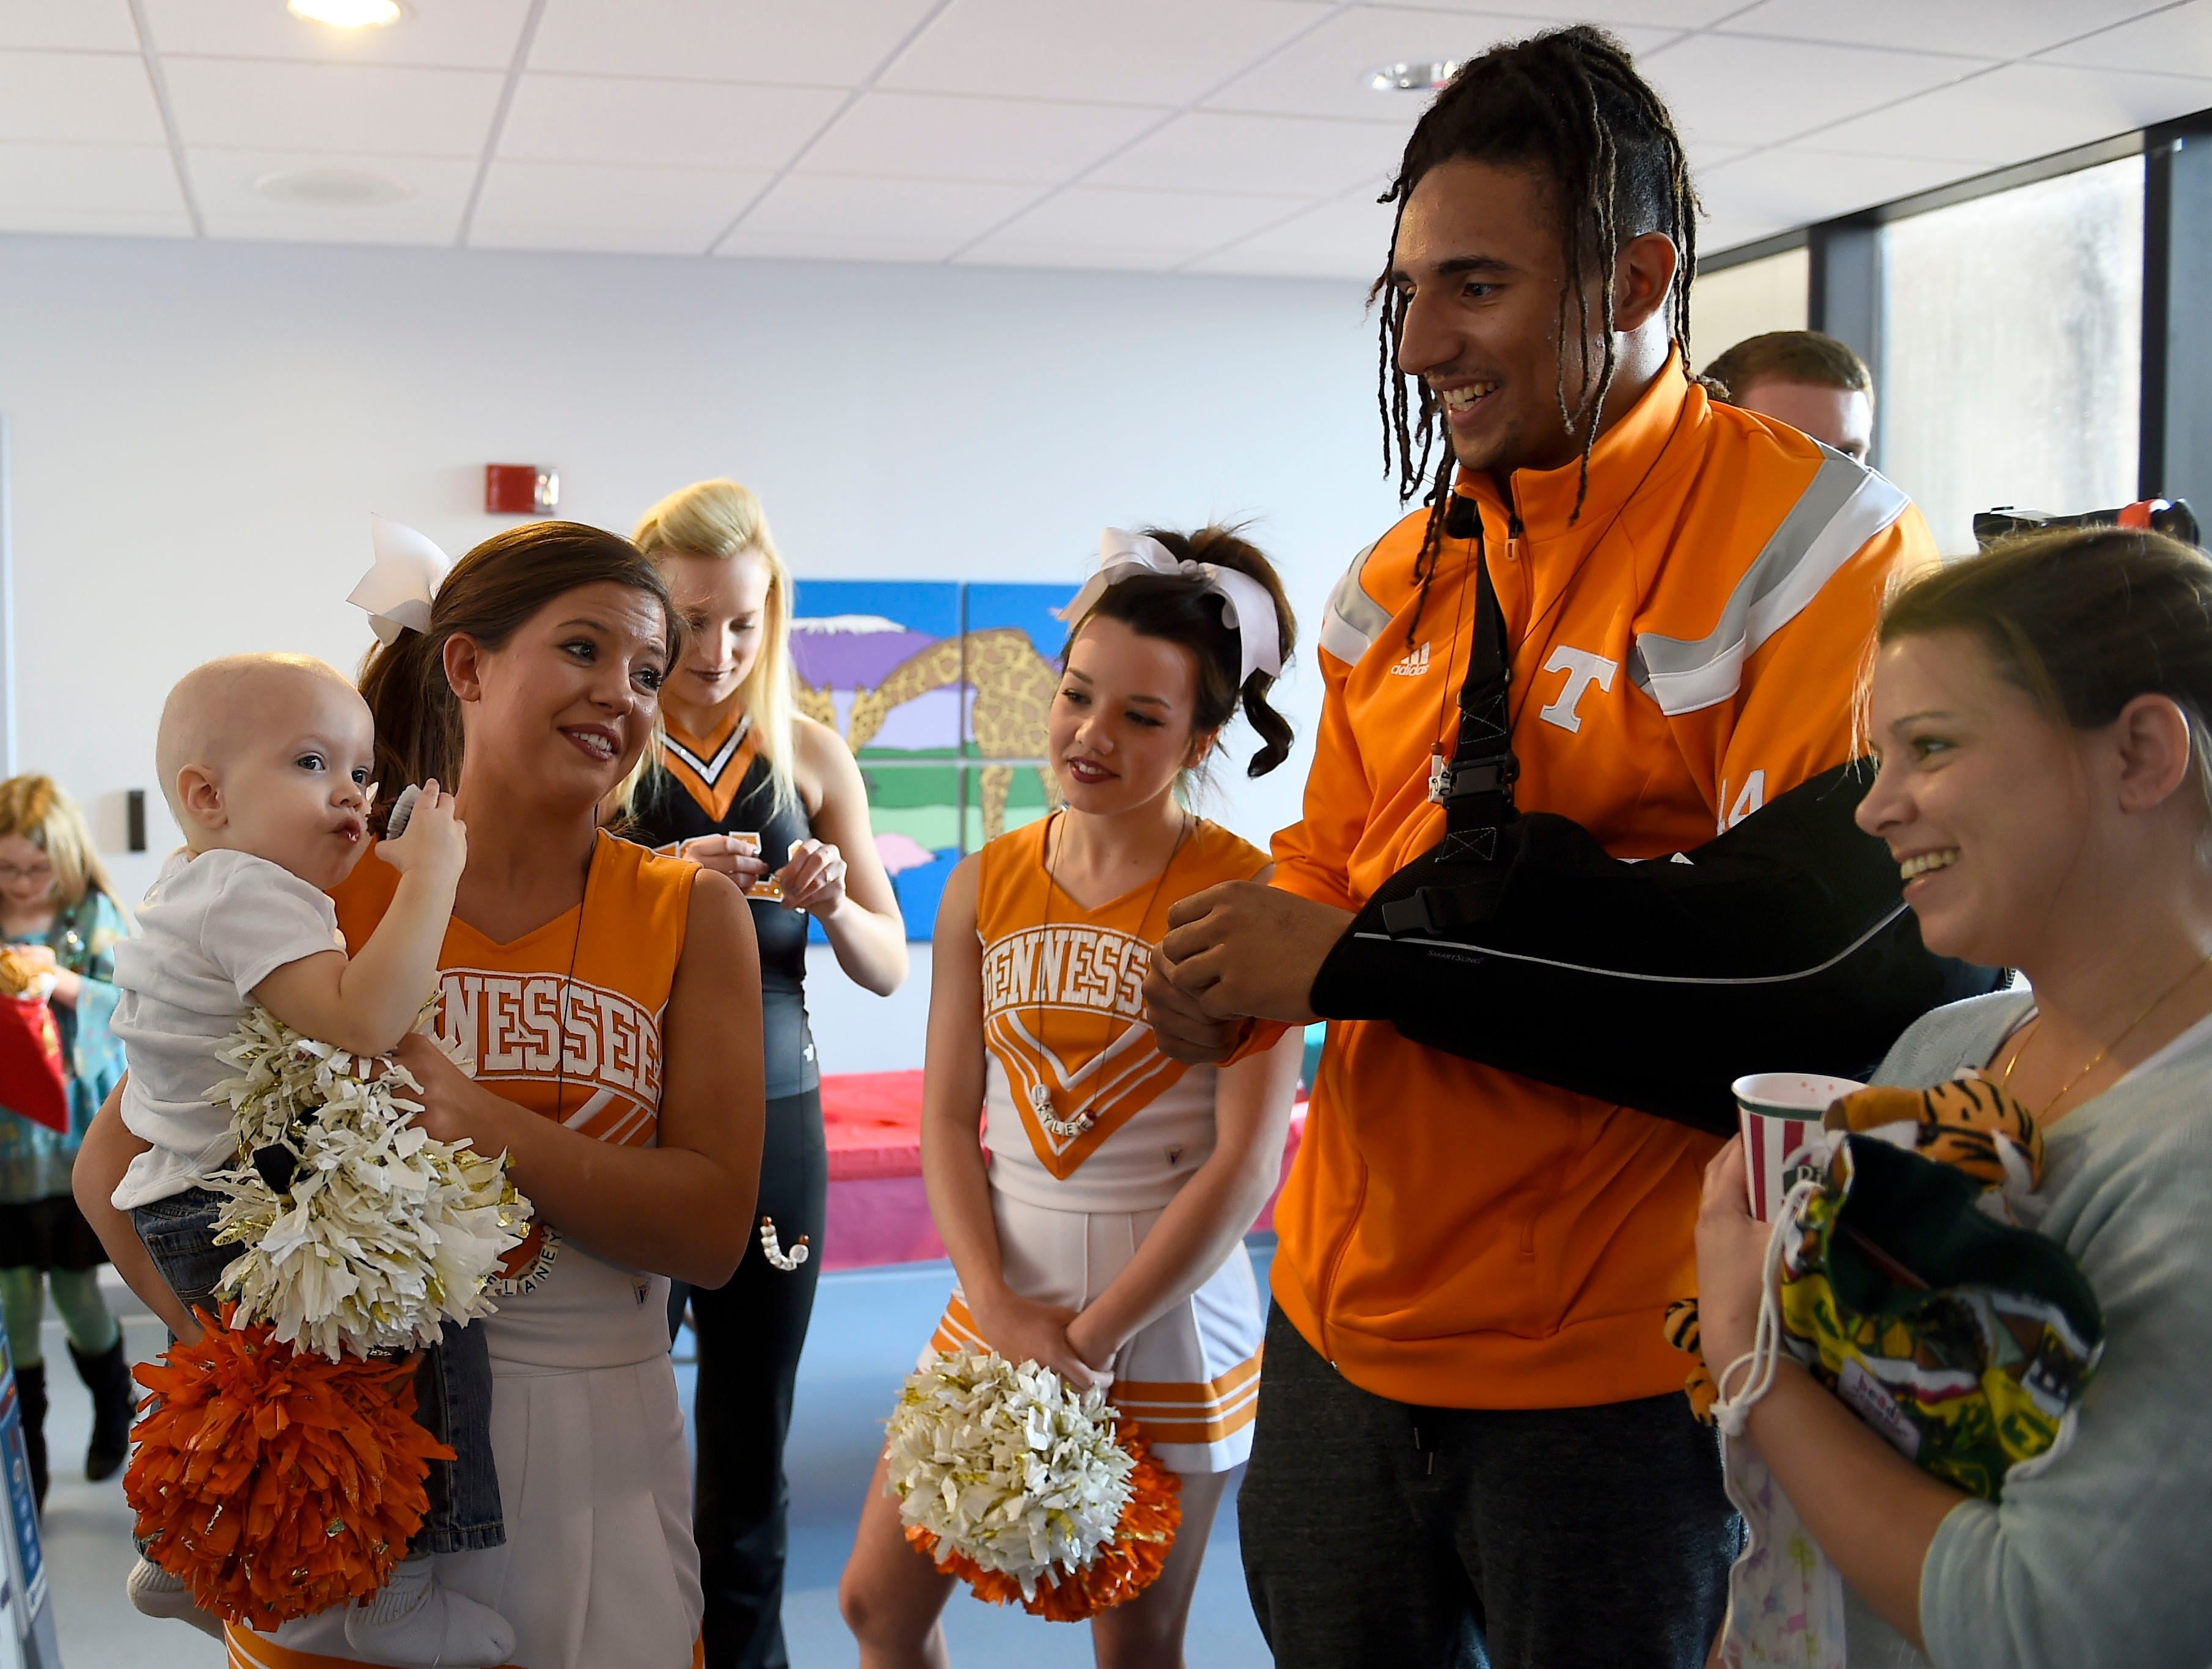 University of Tennessee cheerleaders Delaney Burton and Kylee Dick along with football player Jakob Johnson visit with patient Benny Andrews, 1, and his mother Joy Andrews, during a launch party for the Beads of Courage program at the East Tennessee Children's Hospital Wednesday, Jan. 28, 2015. Patients collect beads to serve as symbols of courage to honor and acknowledge each step of their treatment journey.